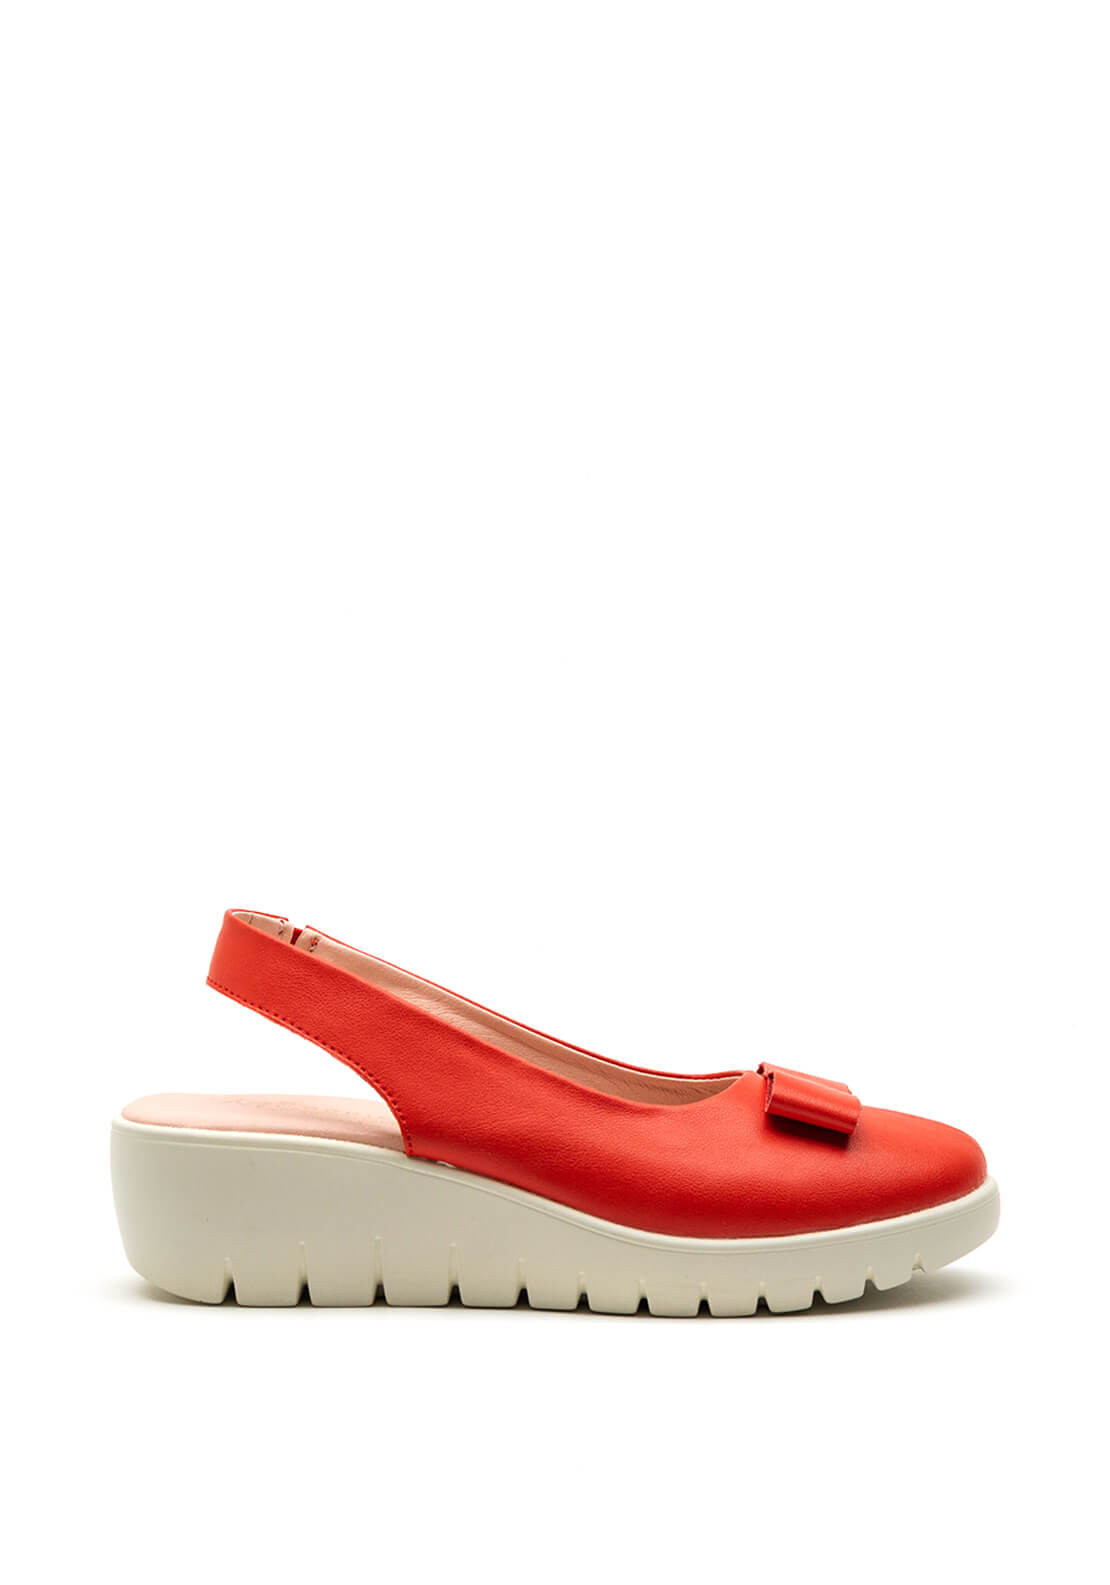 Kate Appleby Chiltern Bow Wedge Shoe, Cherry Red